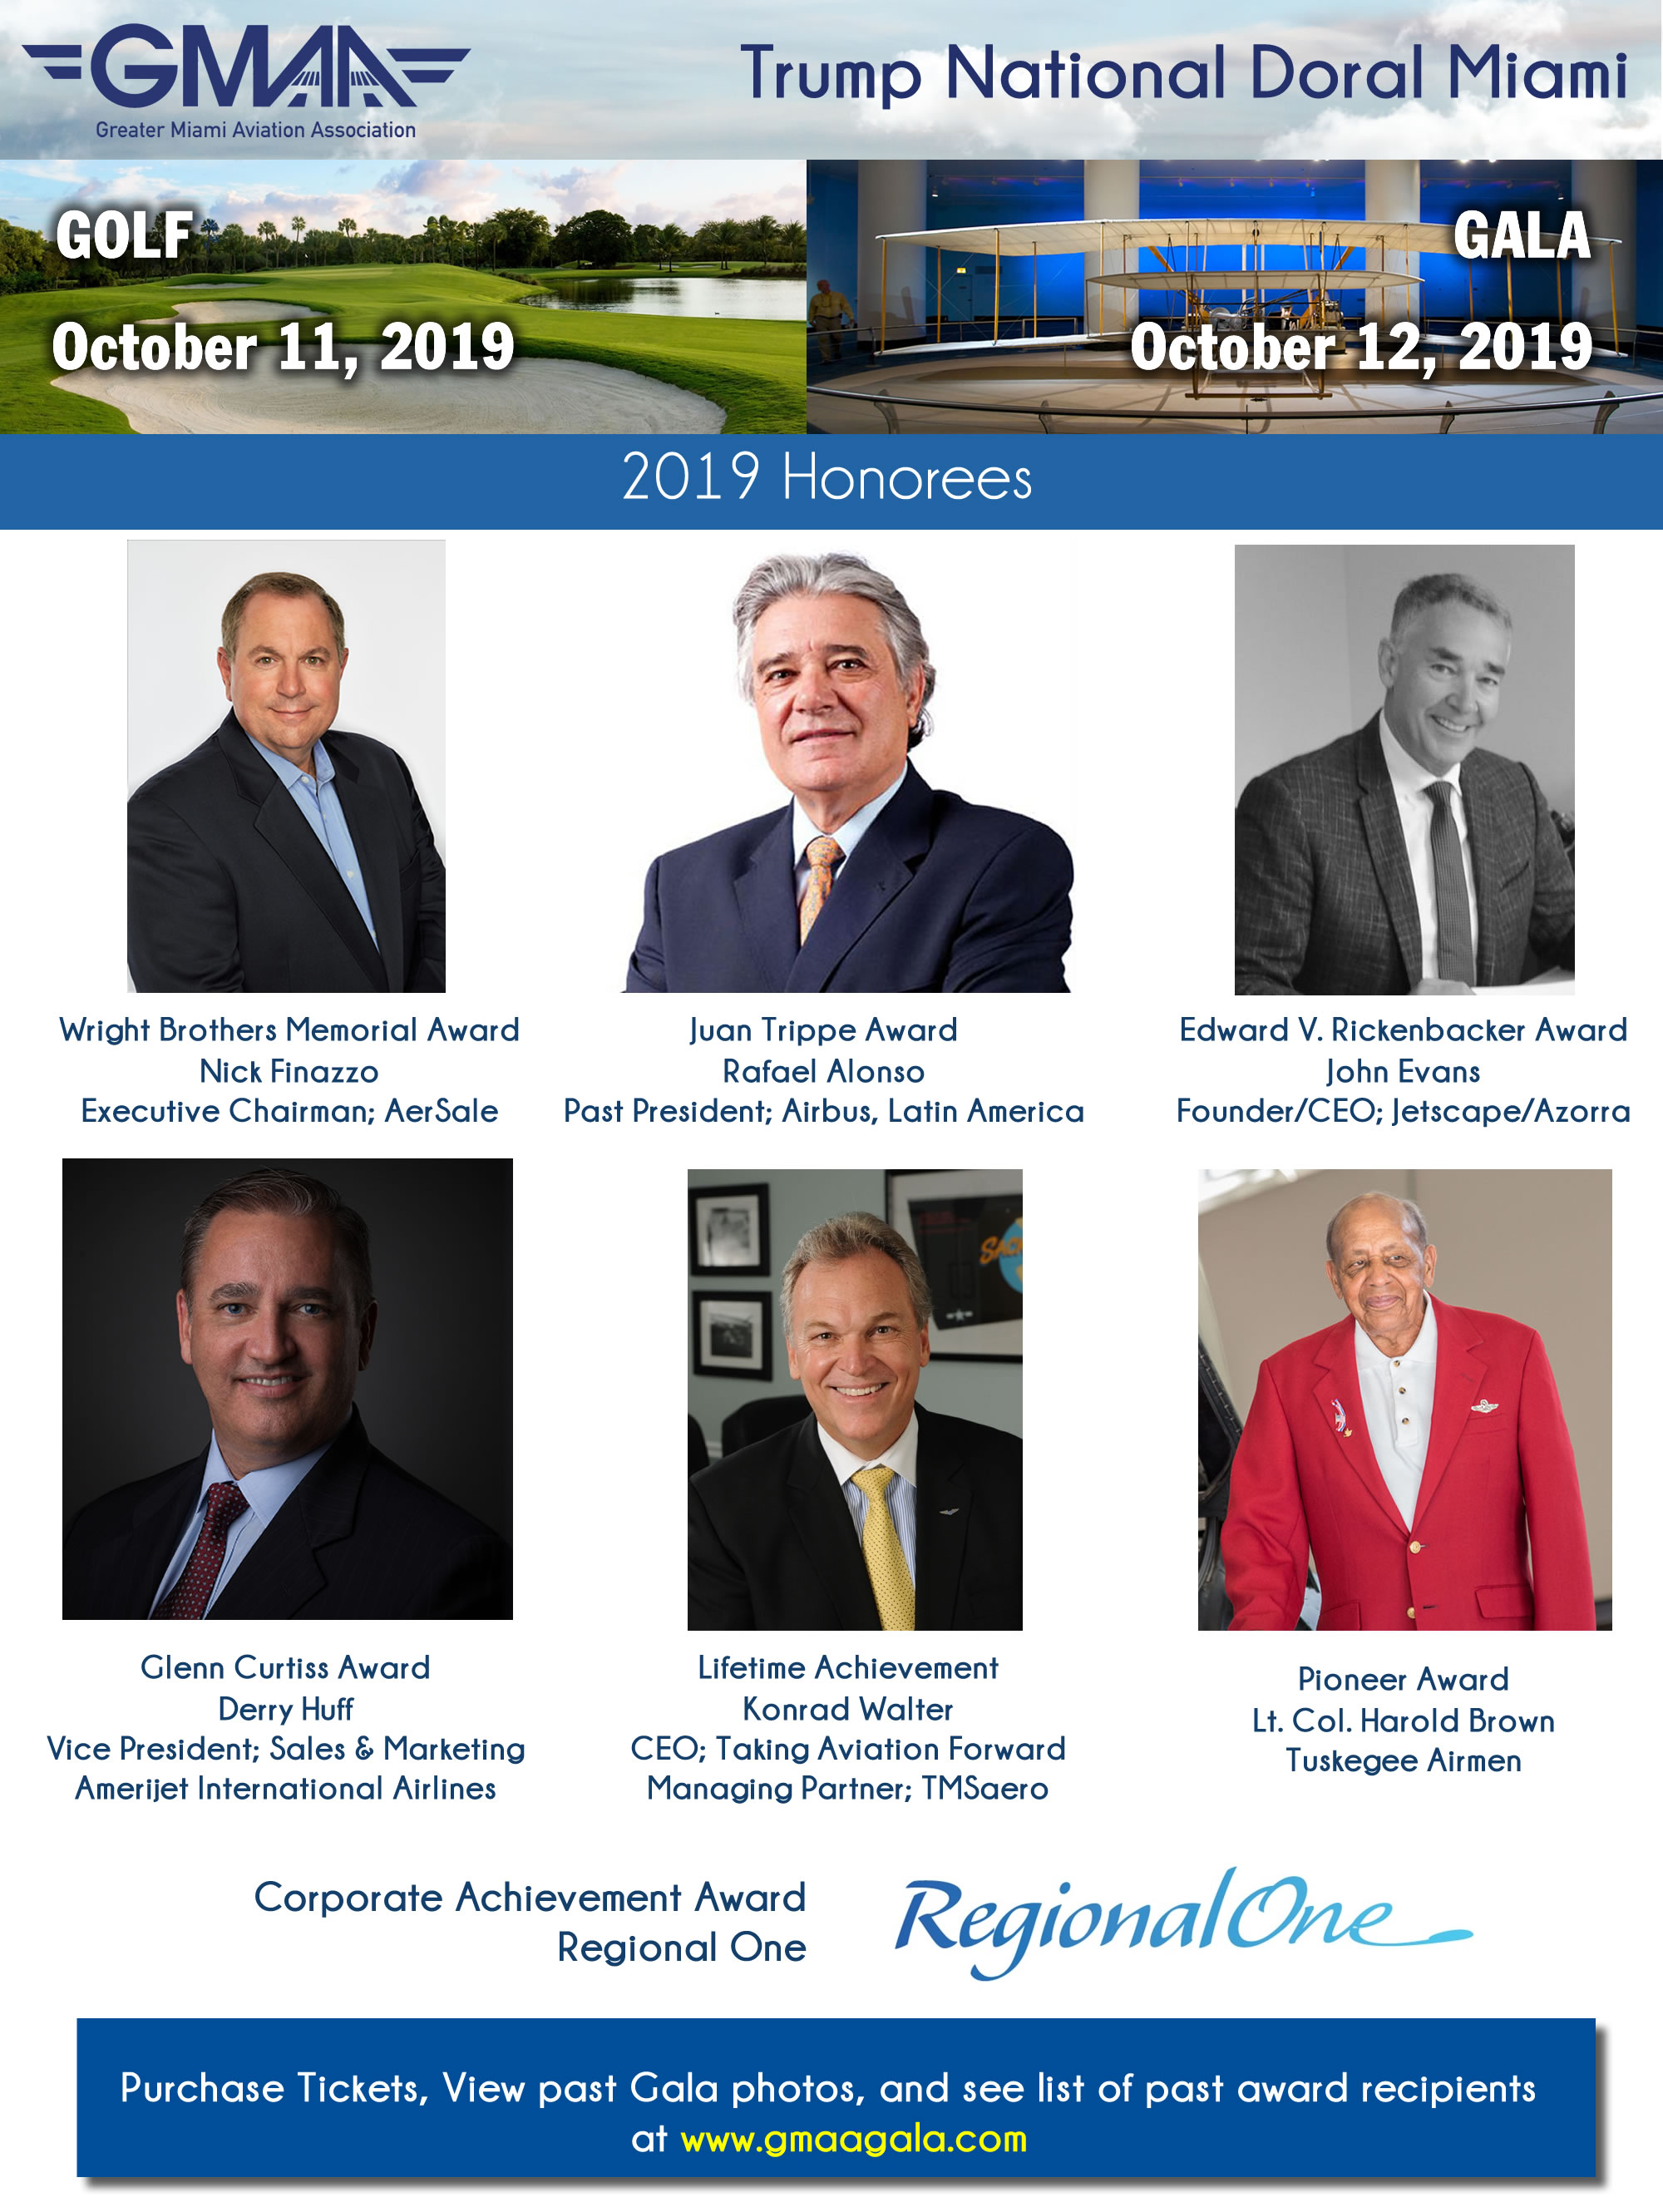 News from the GMAA   Greater Miami Aviation Association